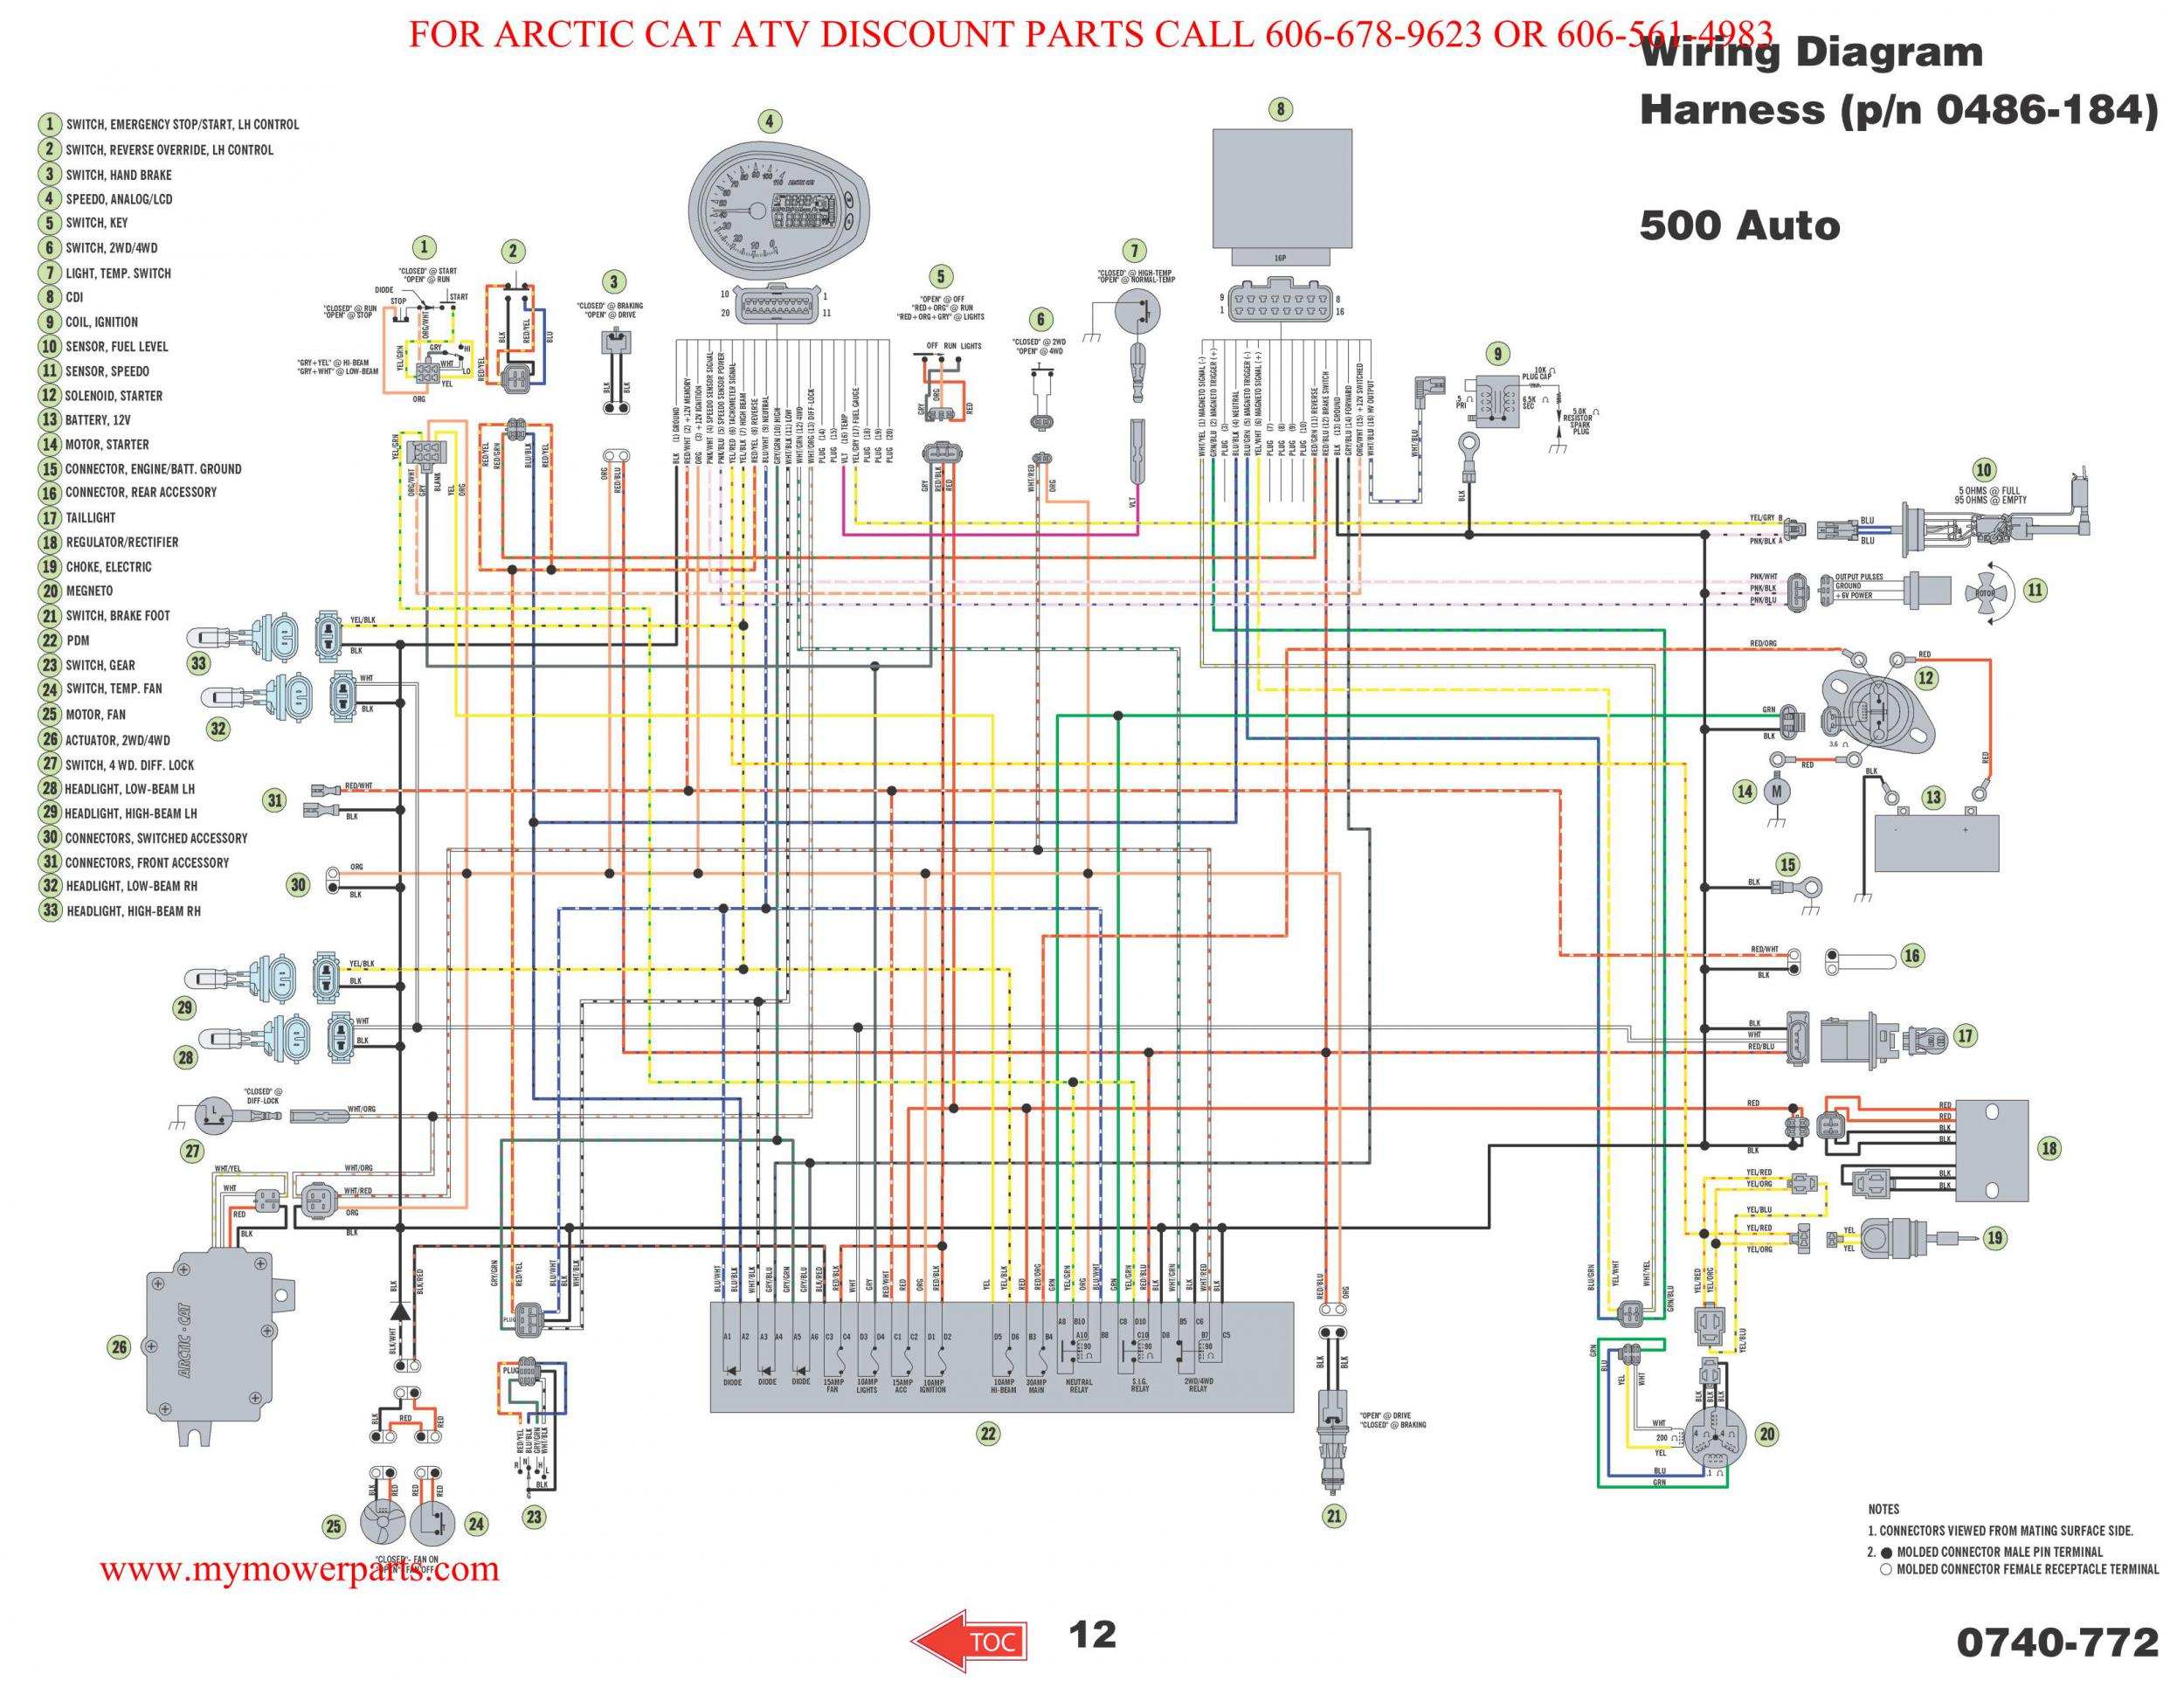 Zr 500 Wiring Diagram Toyota Pickup Engine Diagram Begeboy Wiring Diagram Source